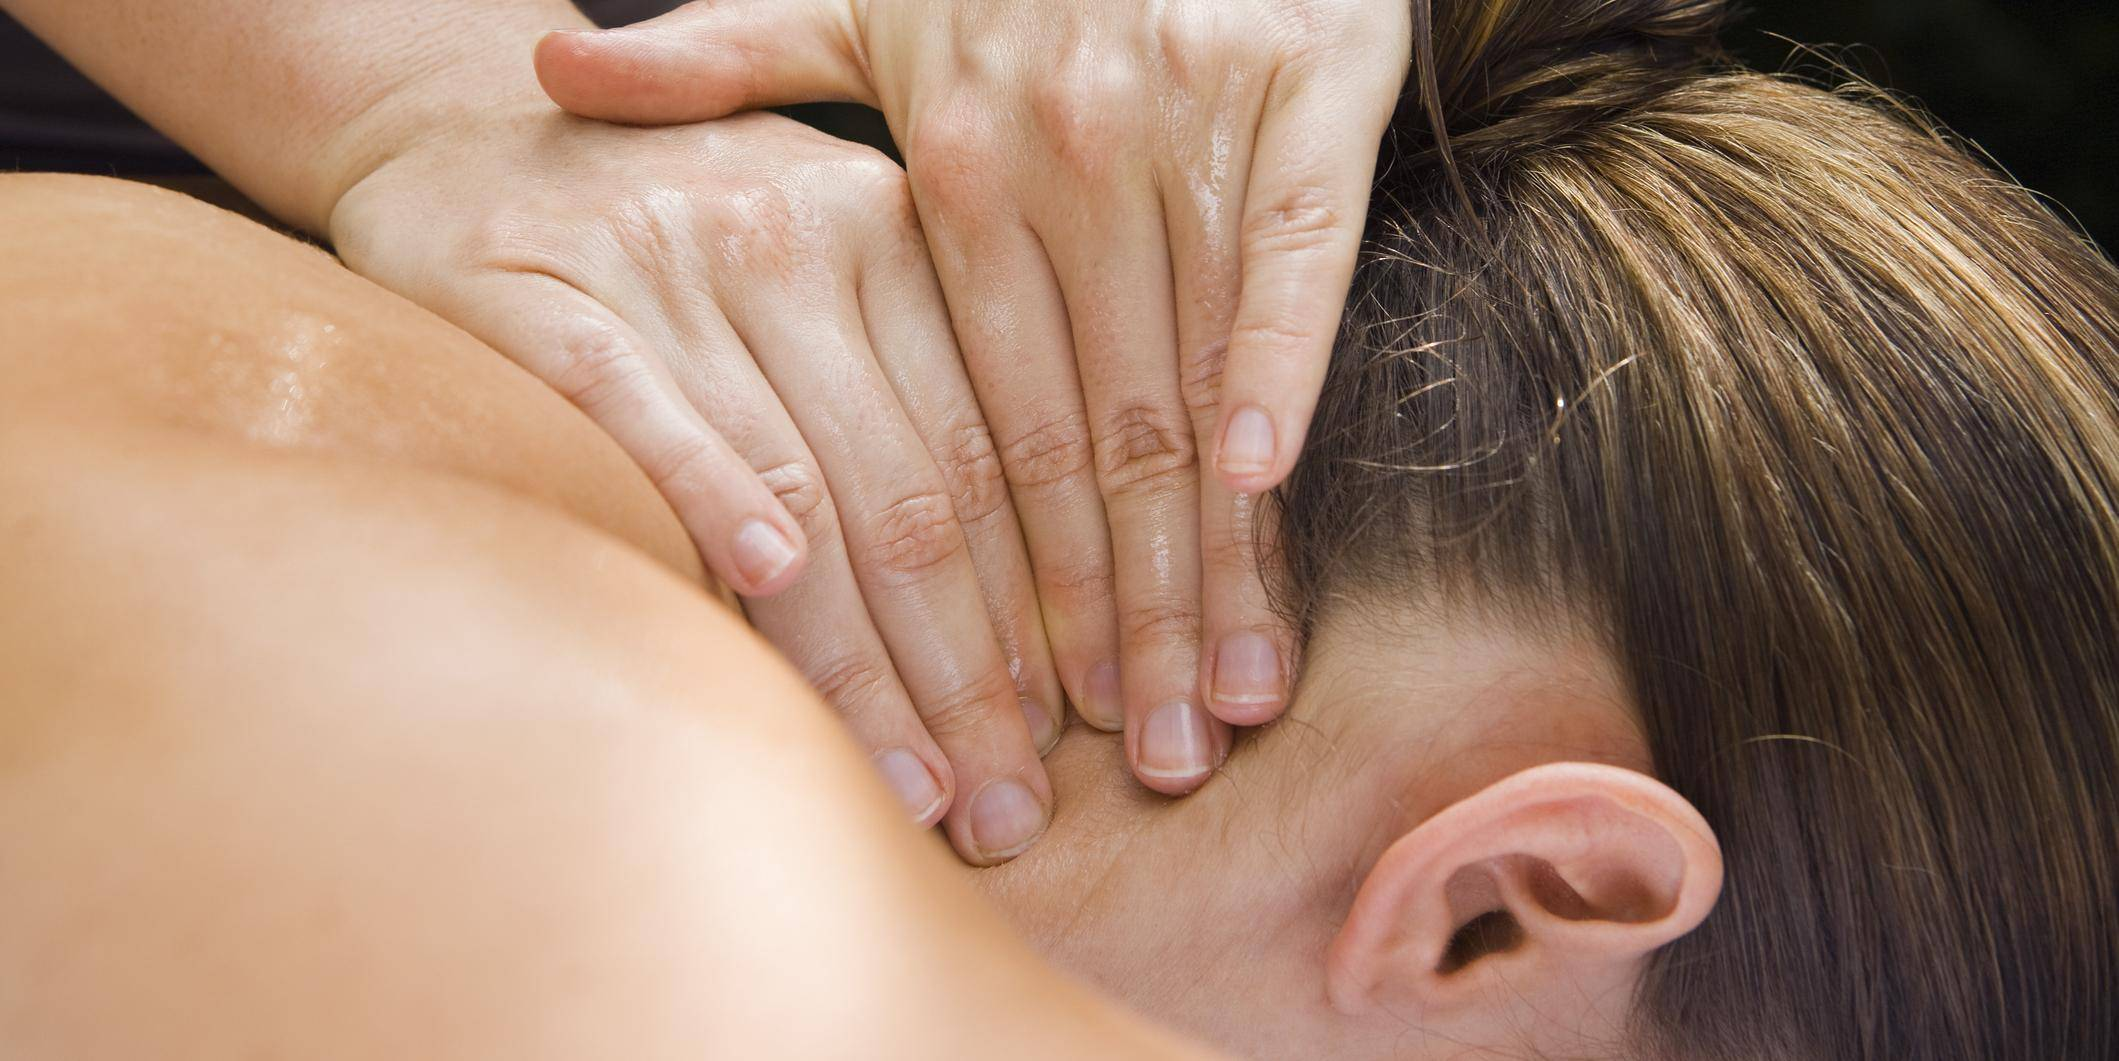 7 things a great massage therapist knows